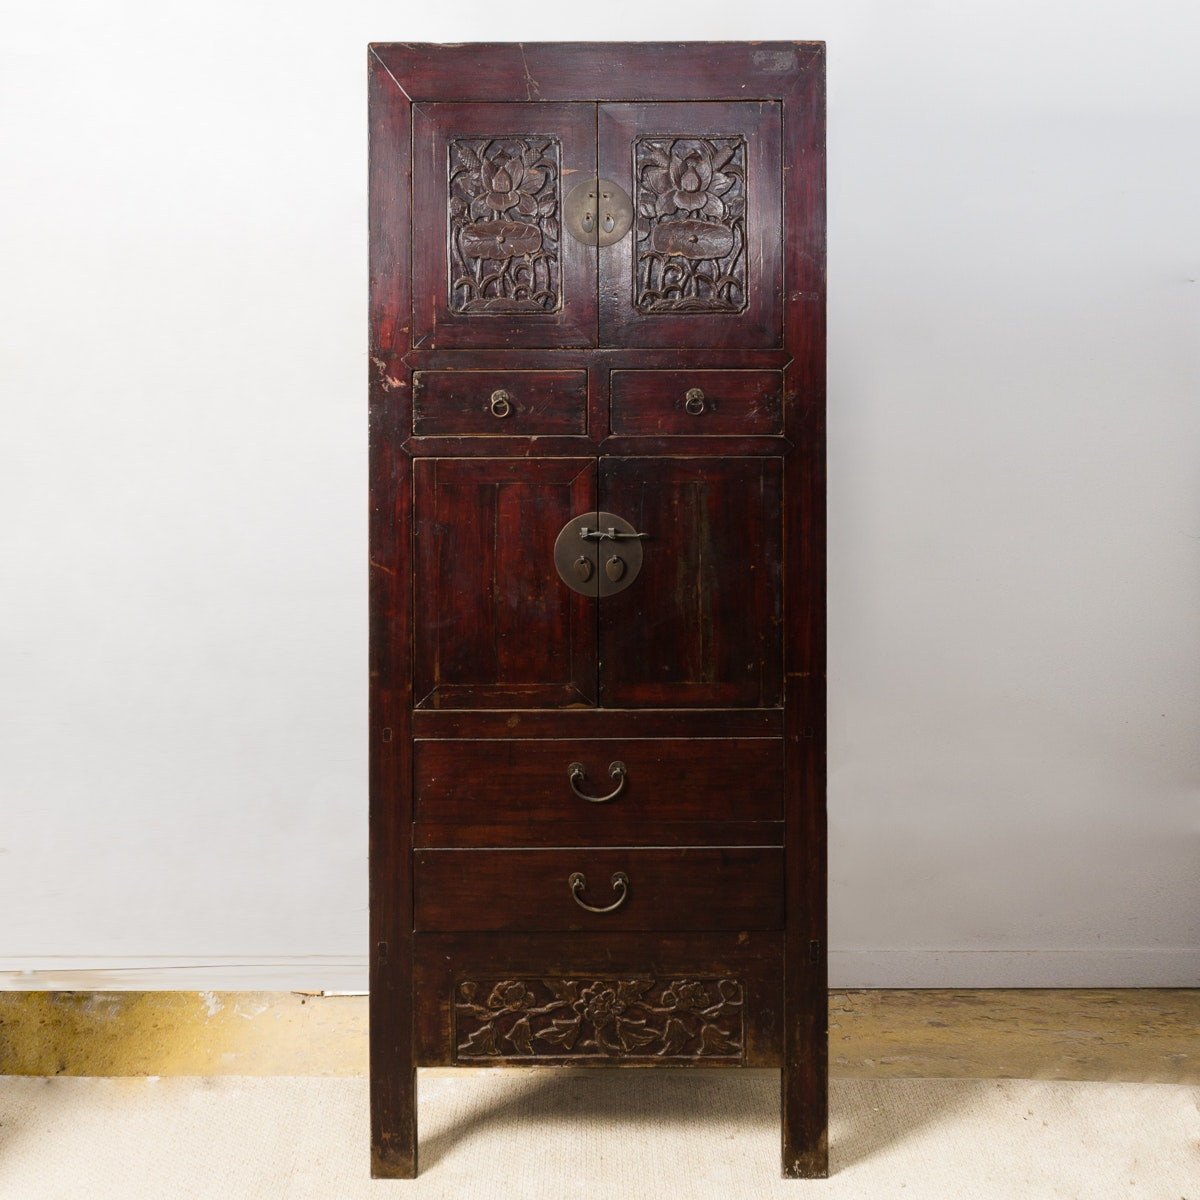 Carved Wood Chinese Cabinet with Drawers